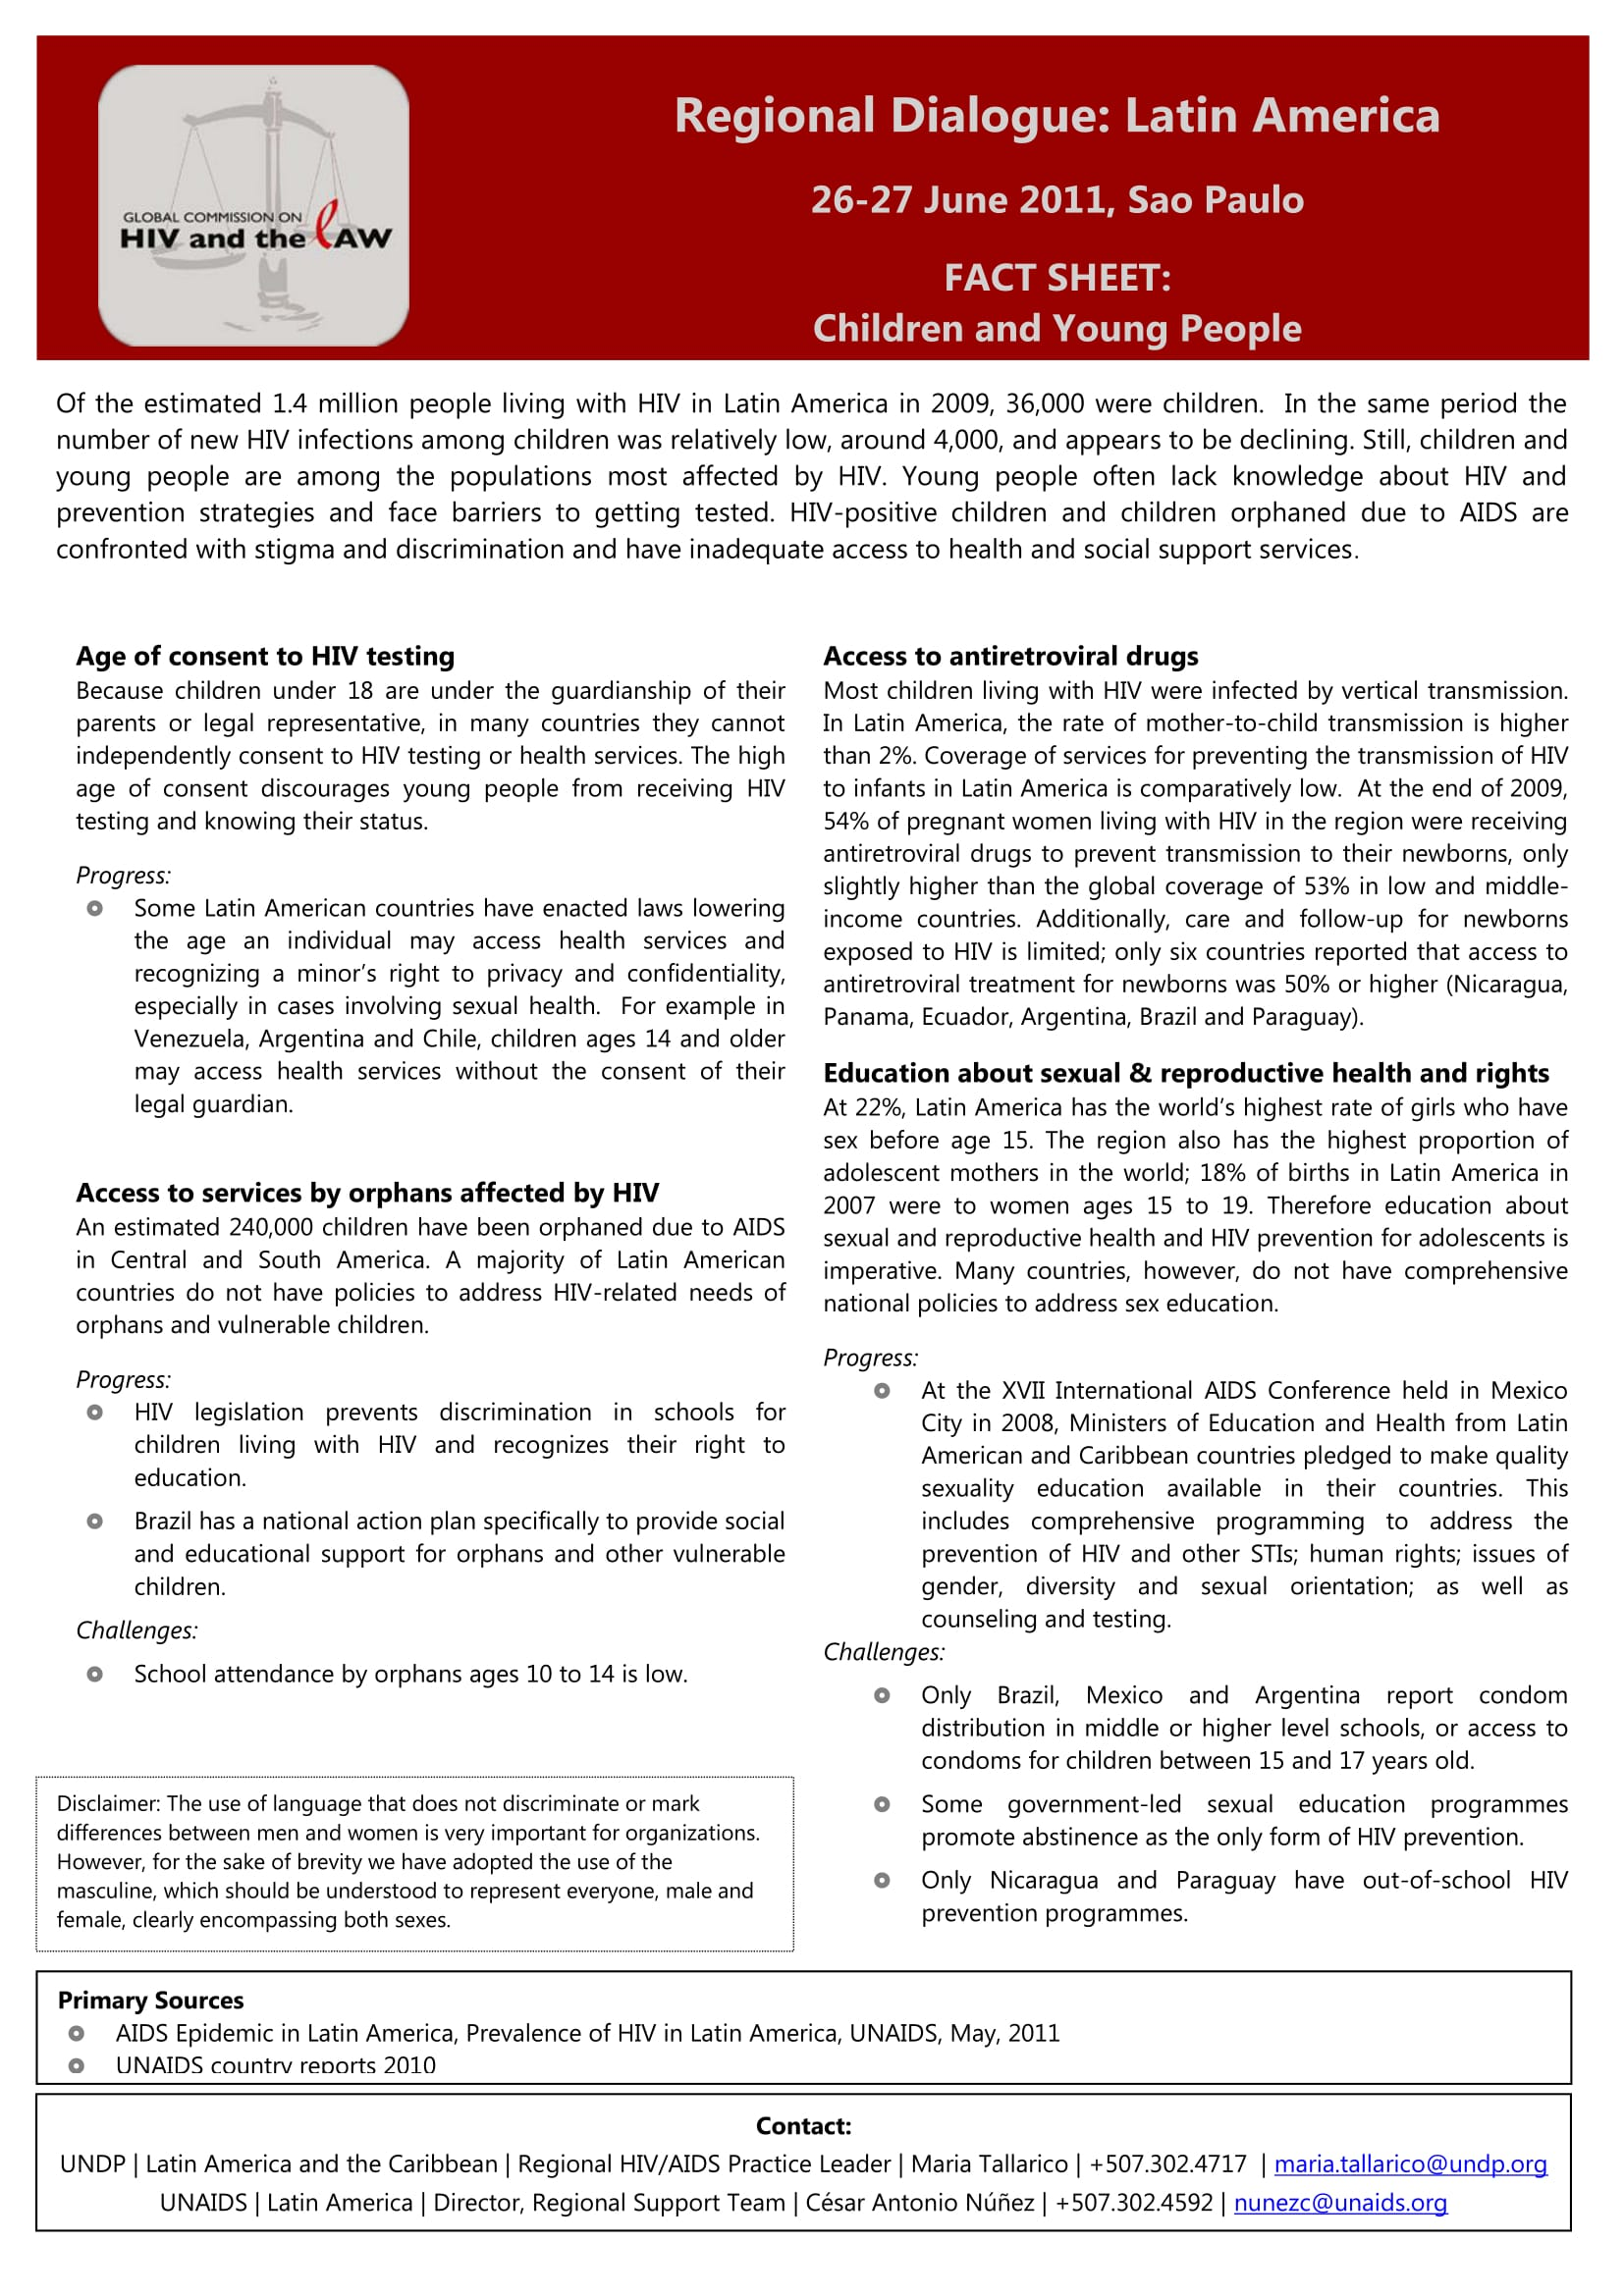 HIV and the Law in Latin America: Fact Sheet – Children and Young People